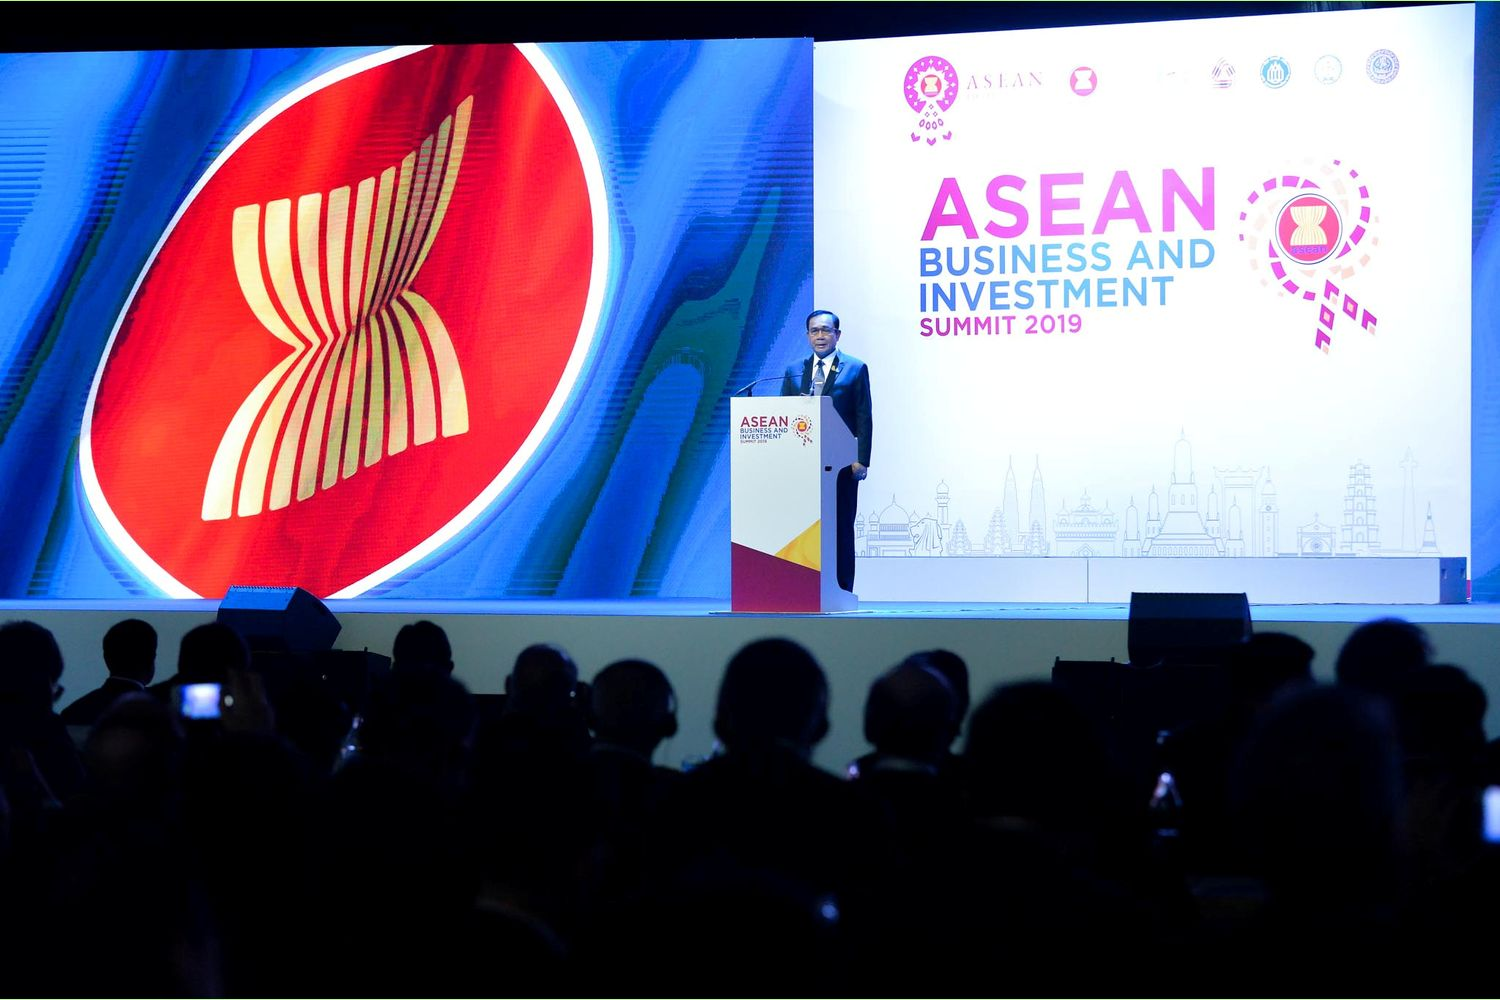 Prime Minister Prayut Chan-o-cha delivers a speech during the opening ceremony of the Asean Business and Investment Summit 2019 (ABIS 2019) in Bangkok on Saturday. (Government House photo)